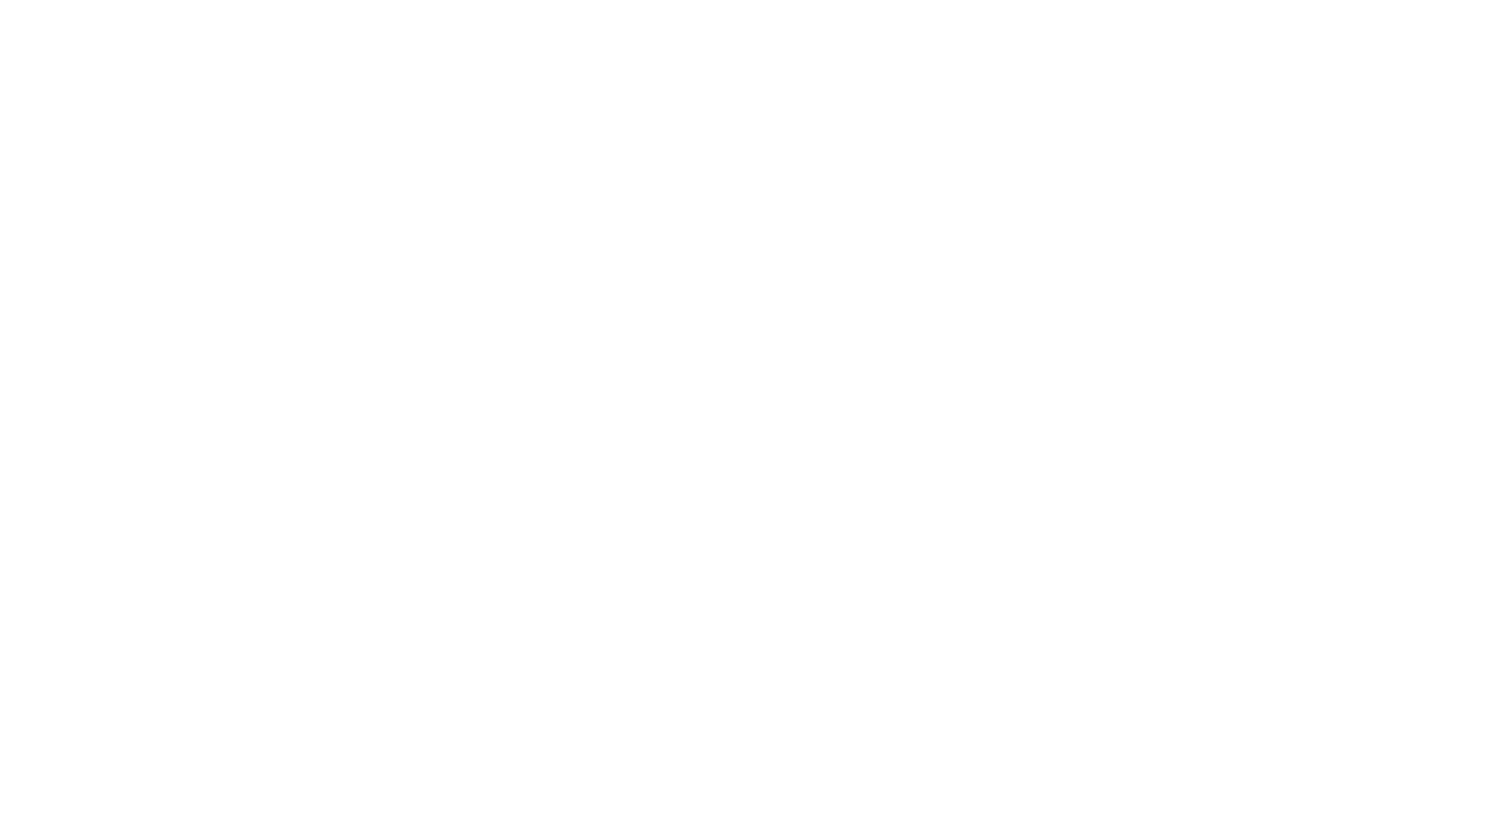 Vanexus Photography